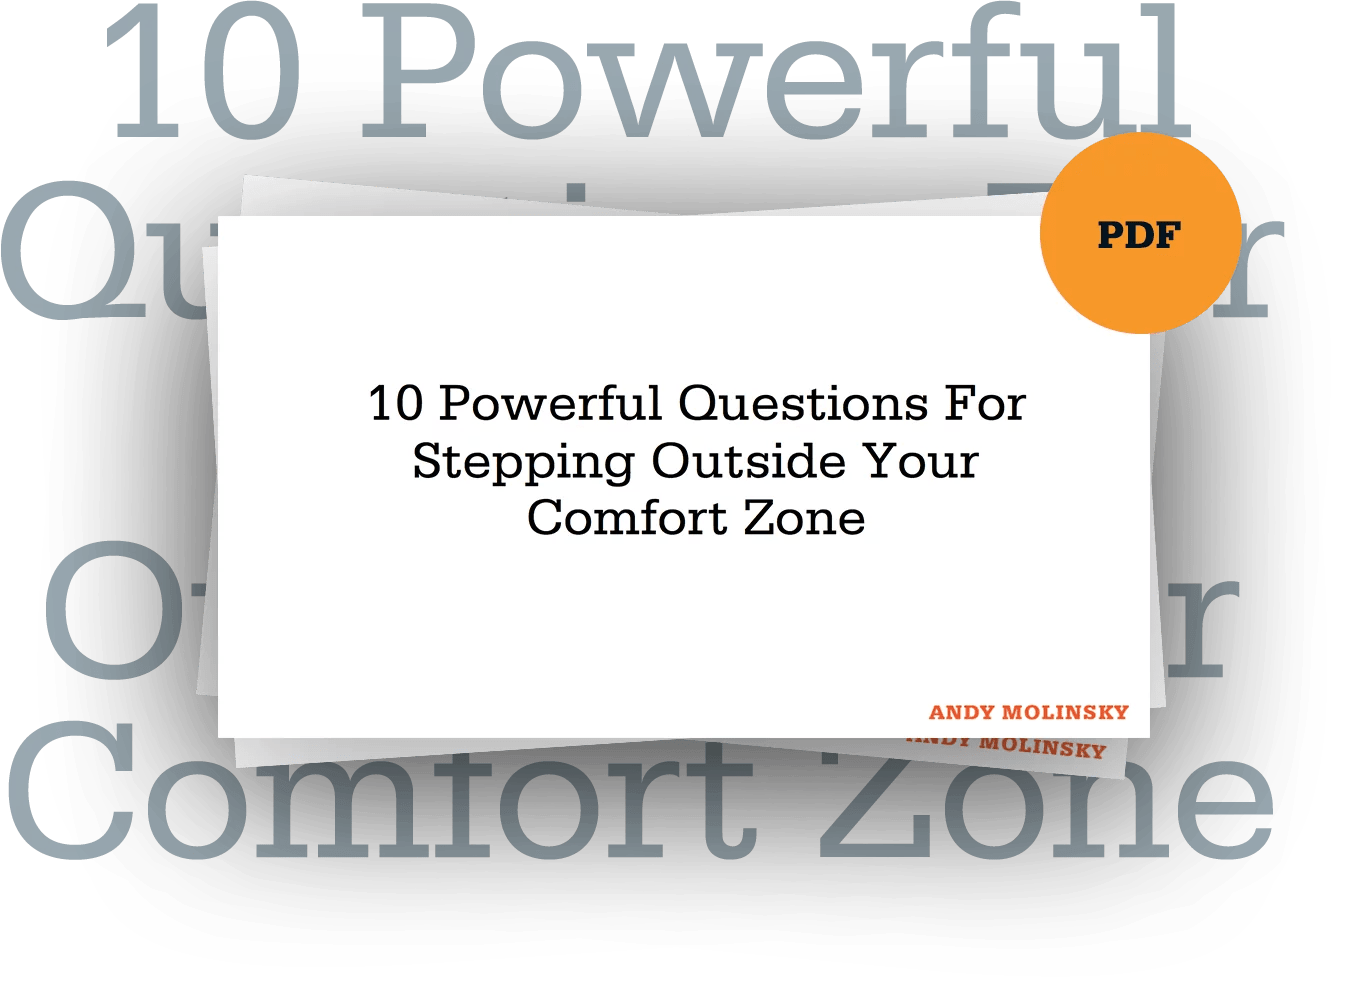 10 Powerful Questions For Stepping Outside Your Comfort